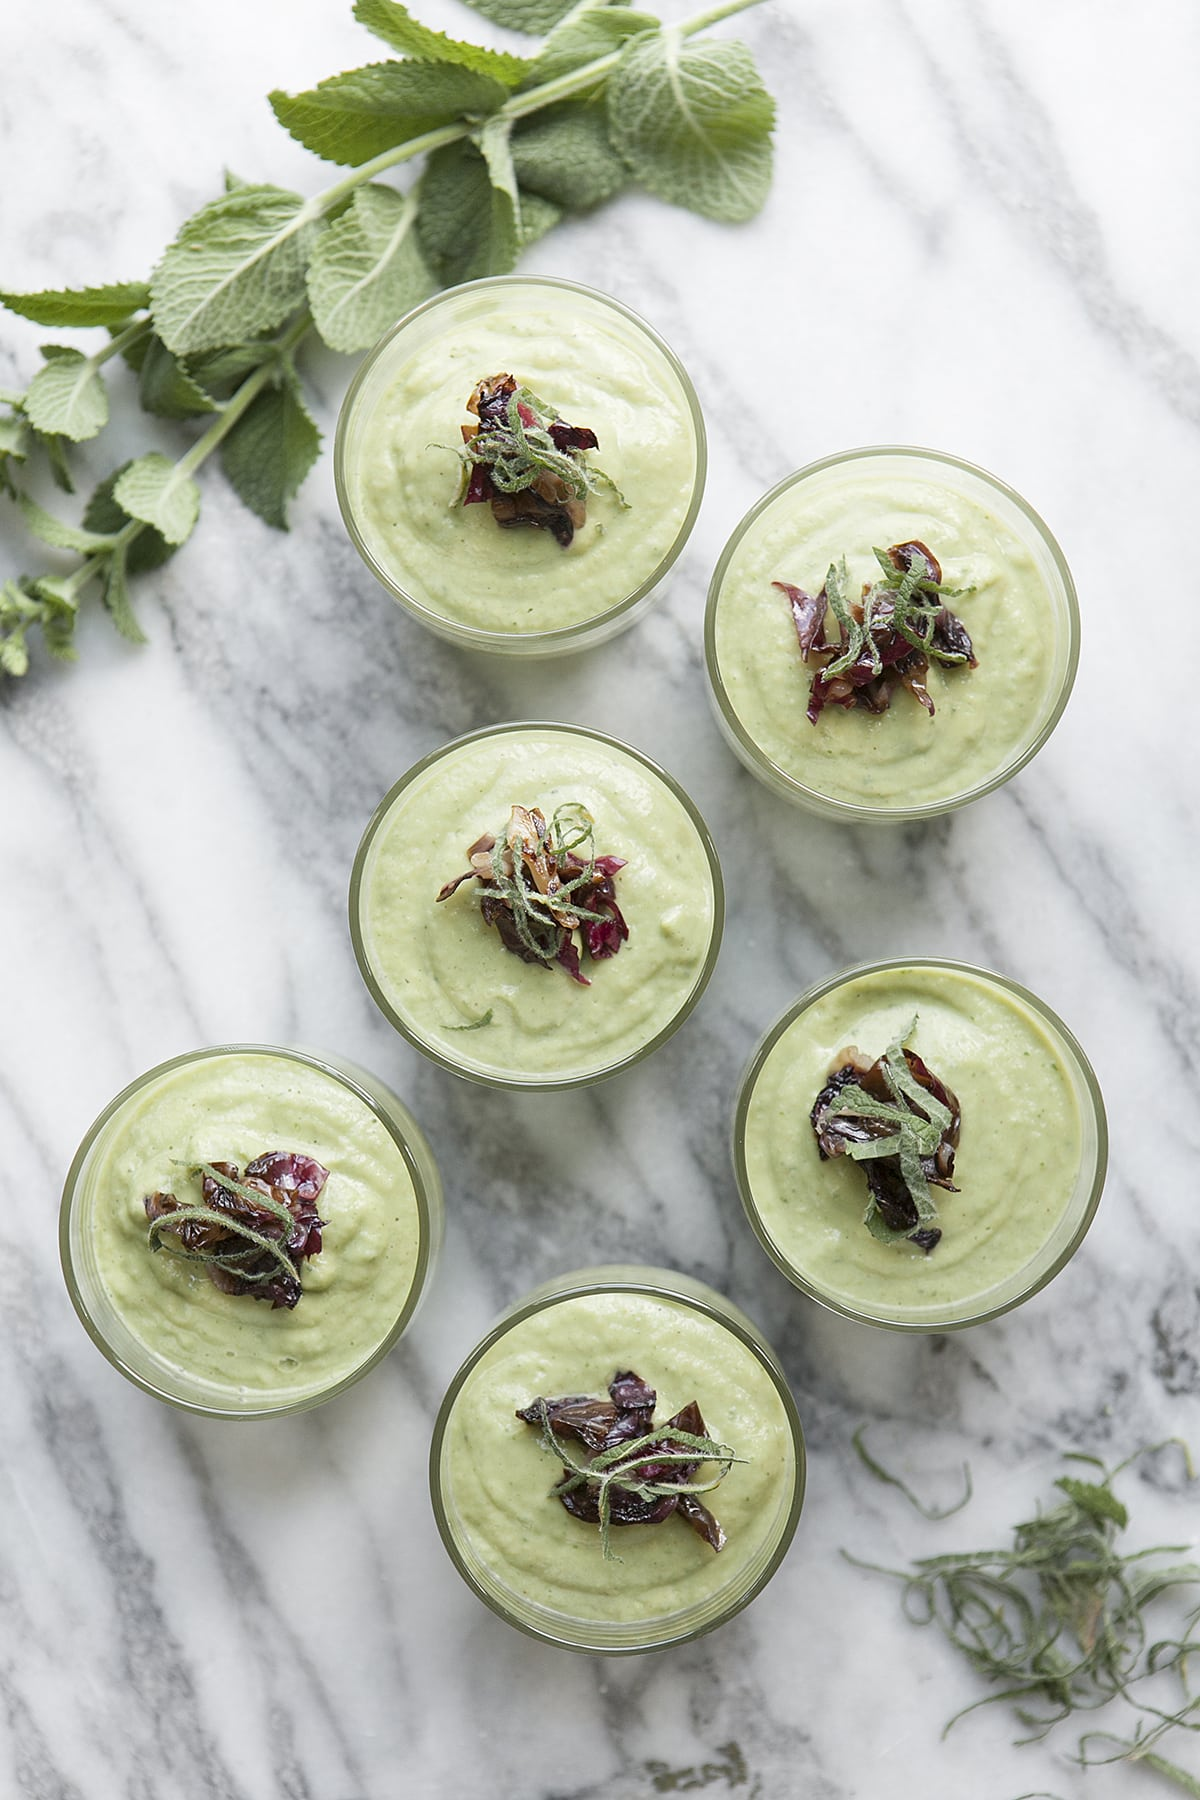 A Radicchio Chilled Avocado Mint Soup | Roasted Radicchio | Easy Appetizers Recipe | Jessica Brigham Blog